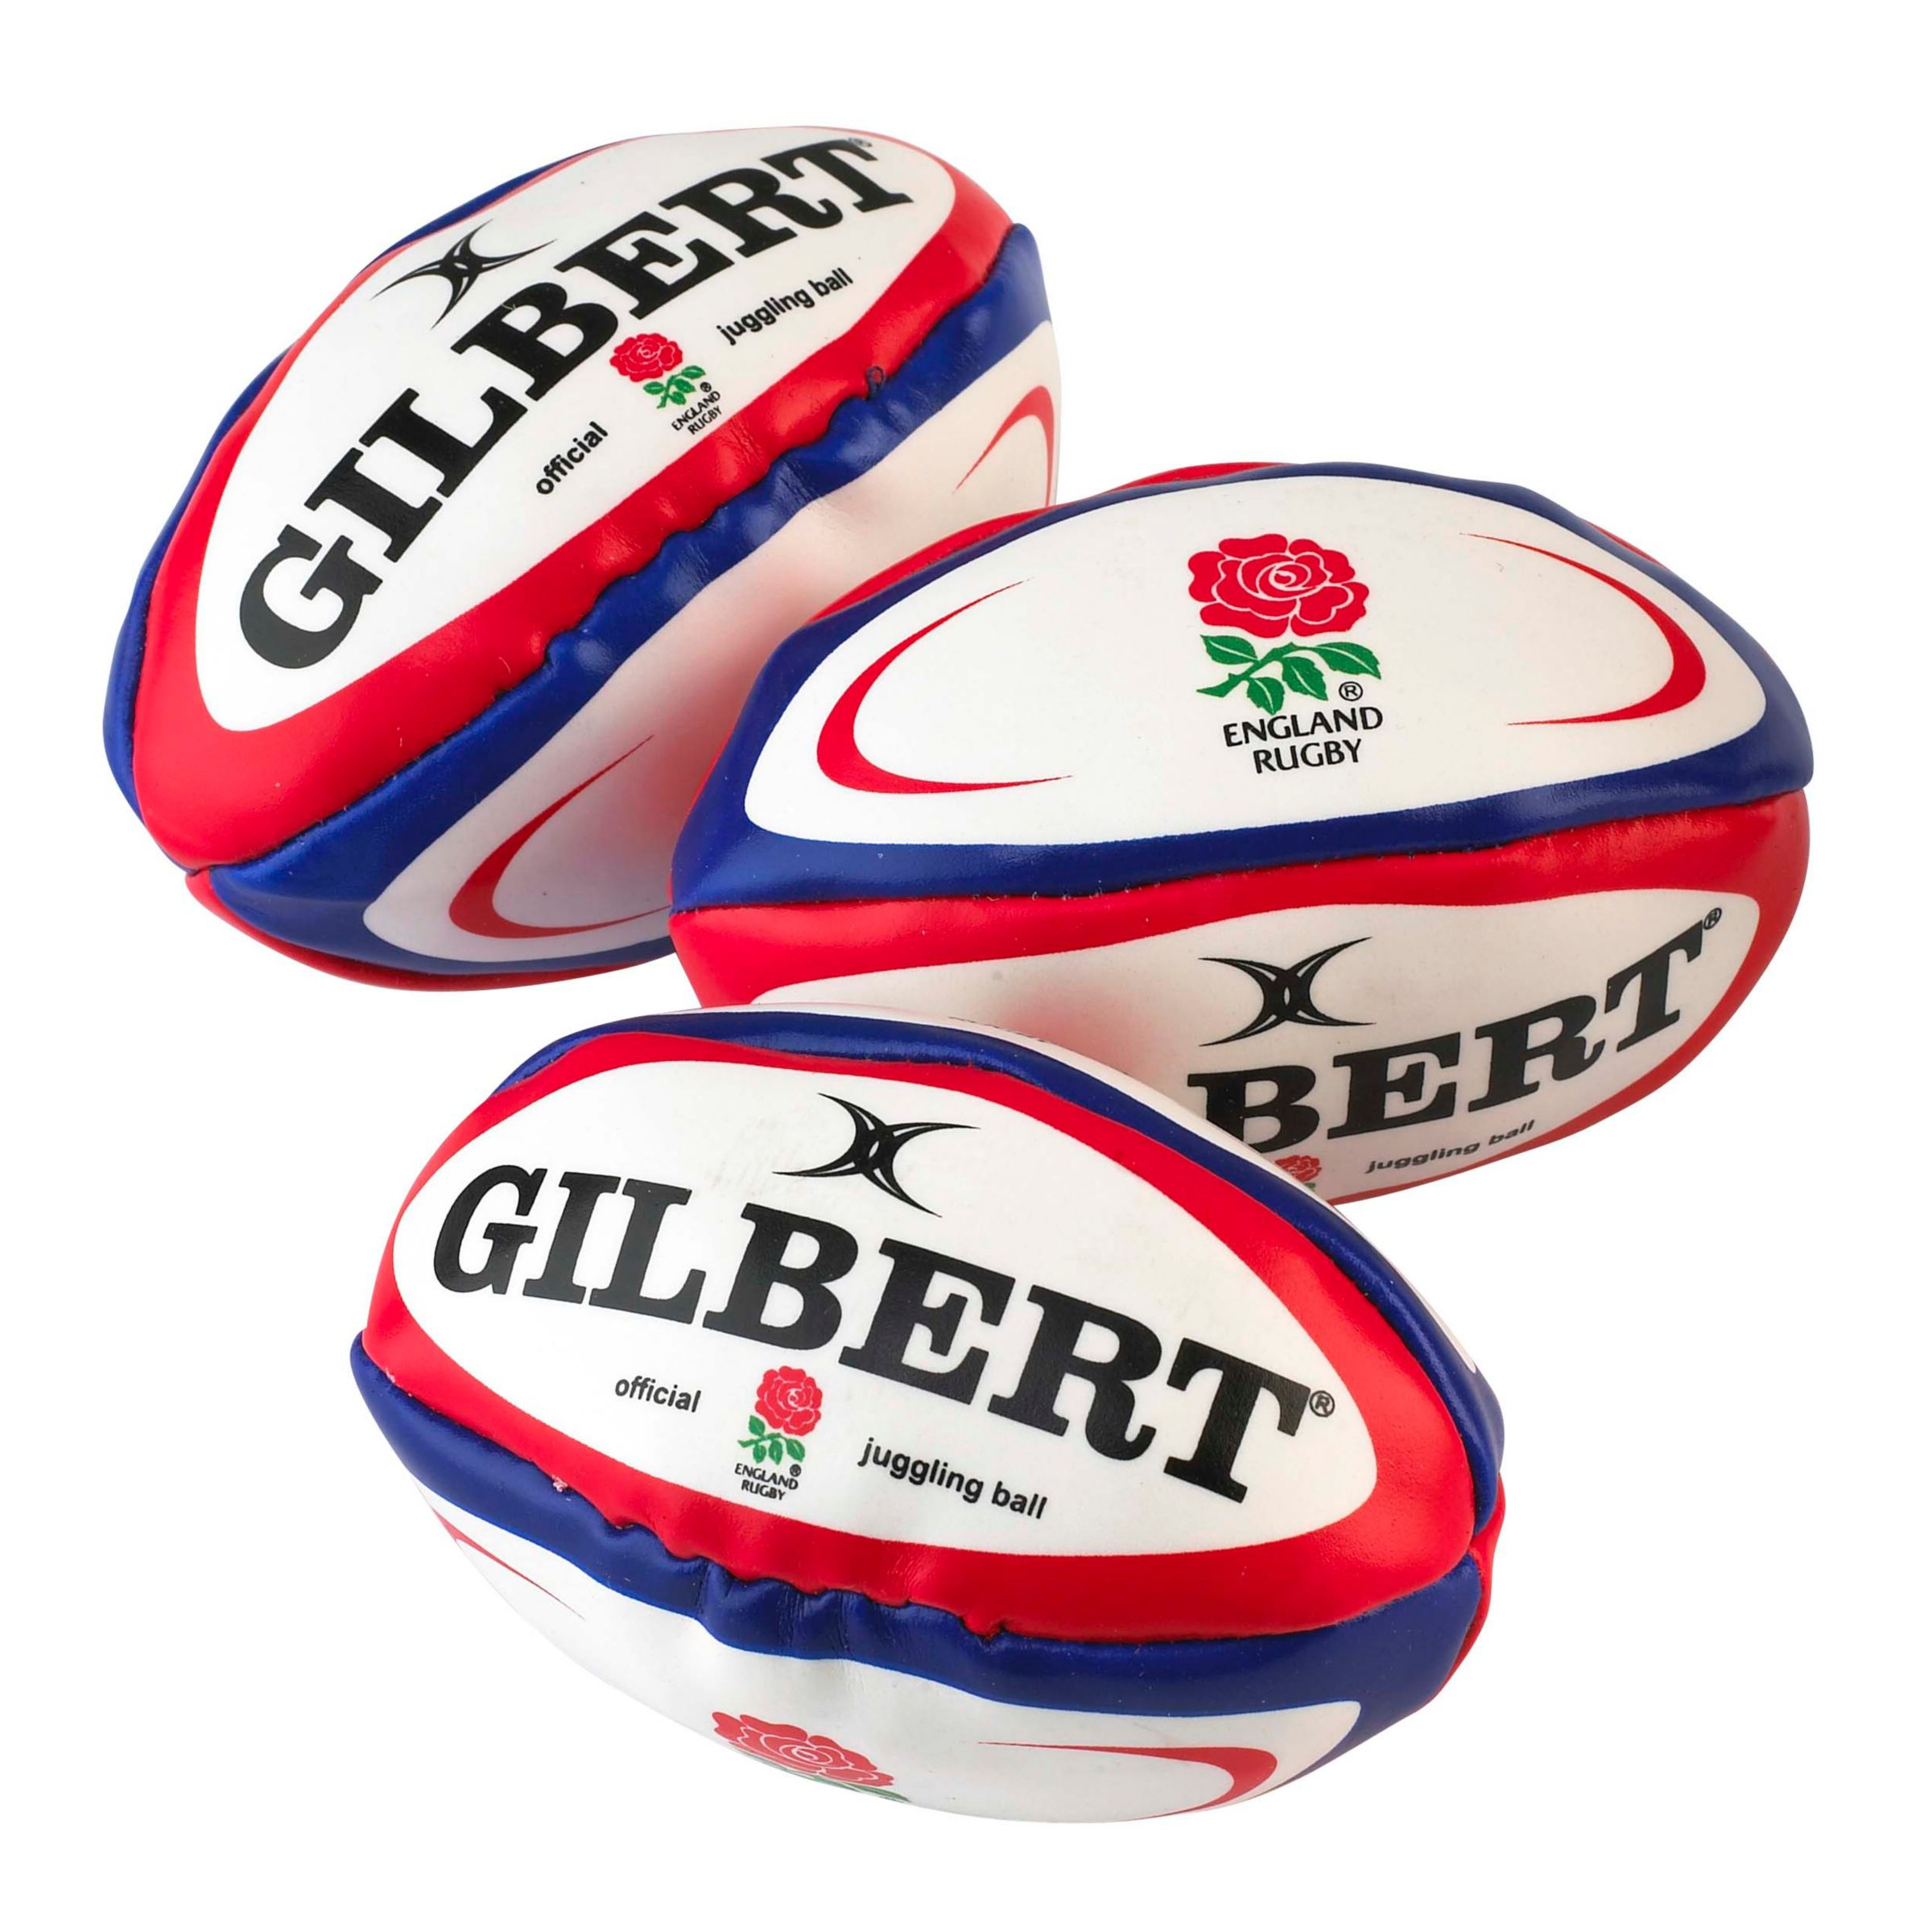 Gilbert Rugby Juggling Balls, Pack of 3